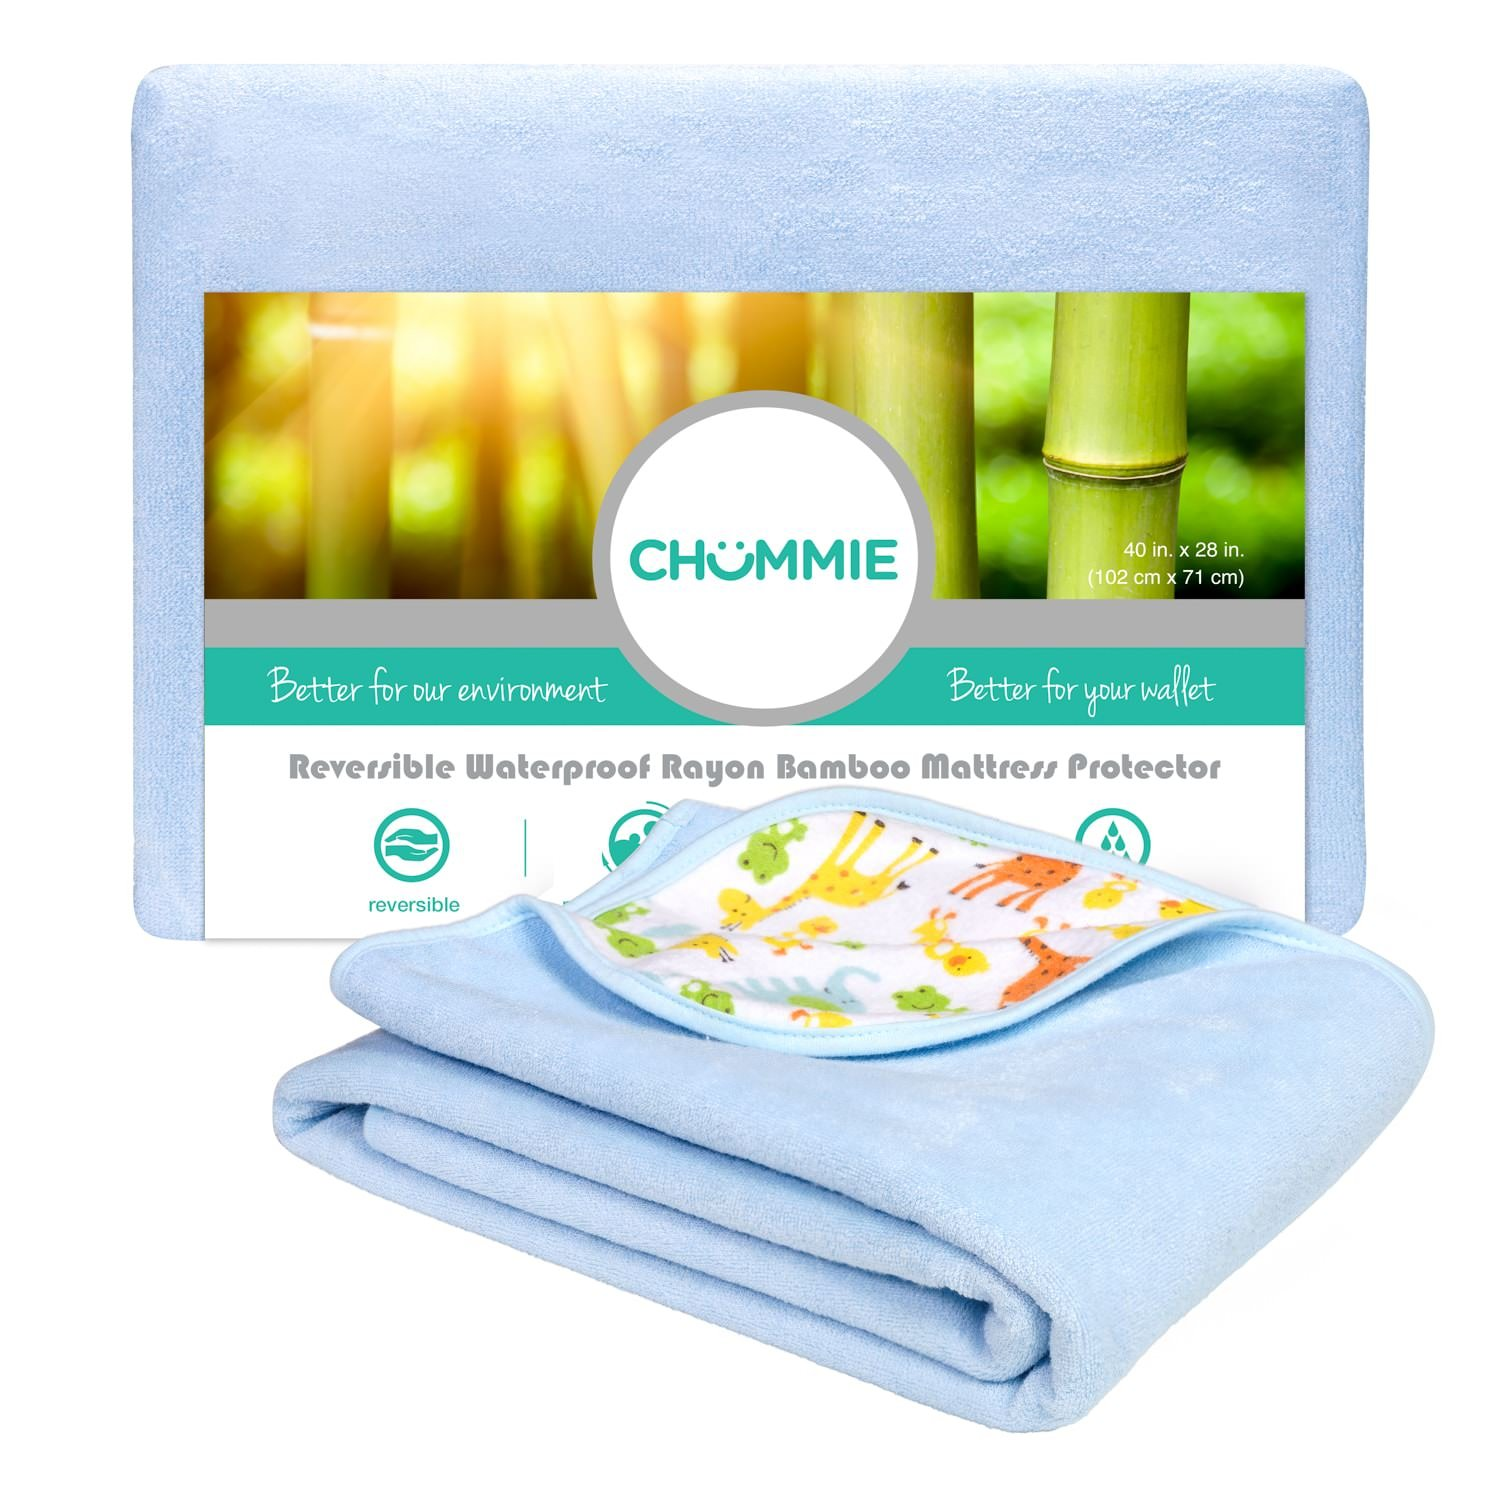 Waterproof Mattress Protector - Store for Chummie Bedwetting Alarm